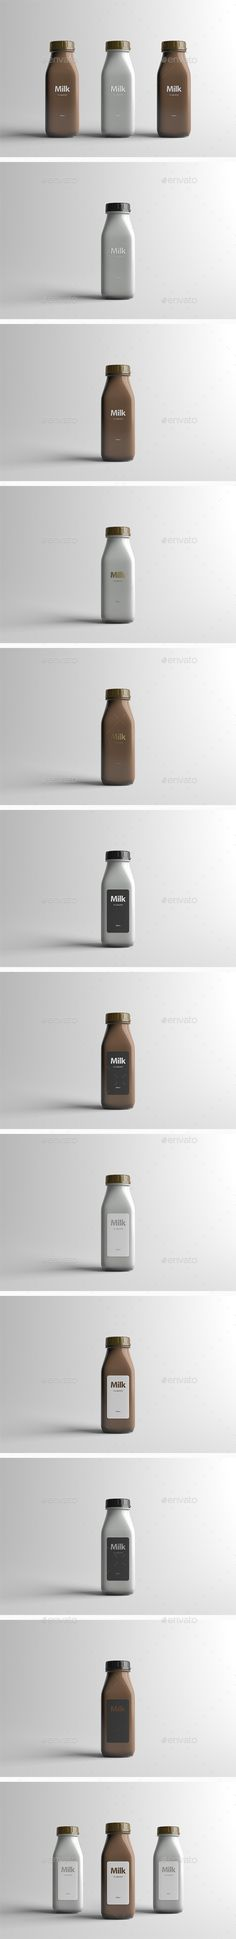 Milk Bottle Packaging Mock-Up. Download here: http://graphicriver.net/item/milk-bottle-packaging-mockup/16079323?ref=ksioks